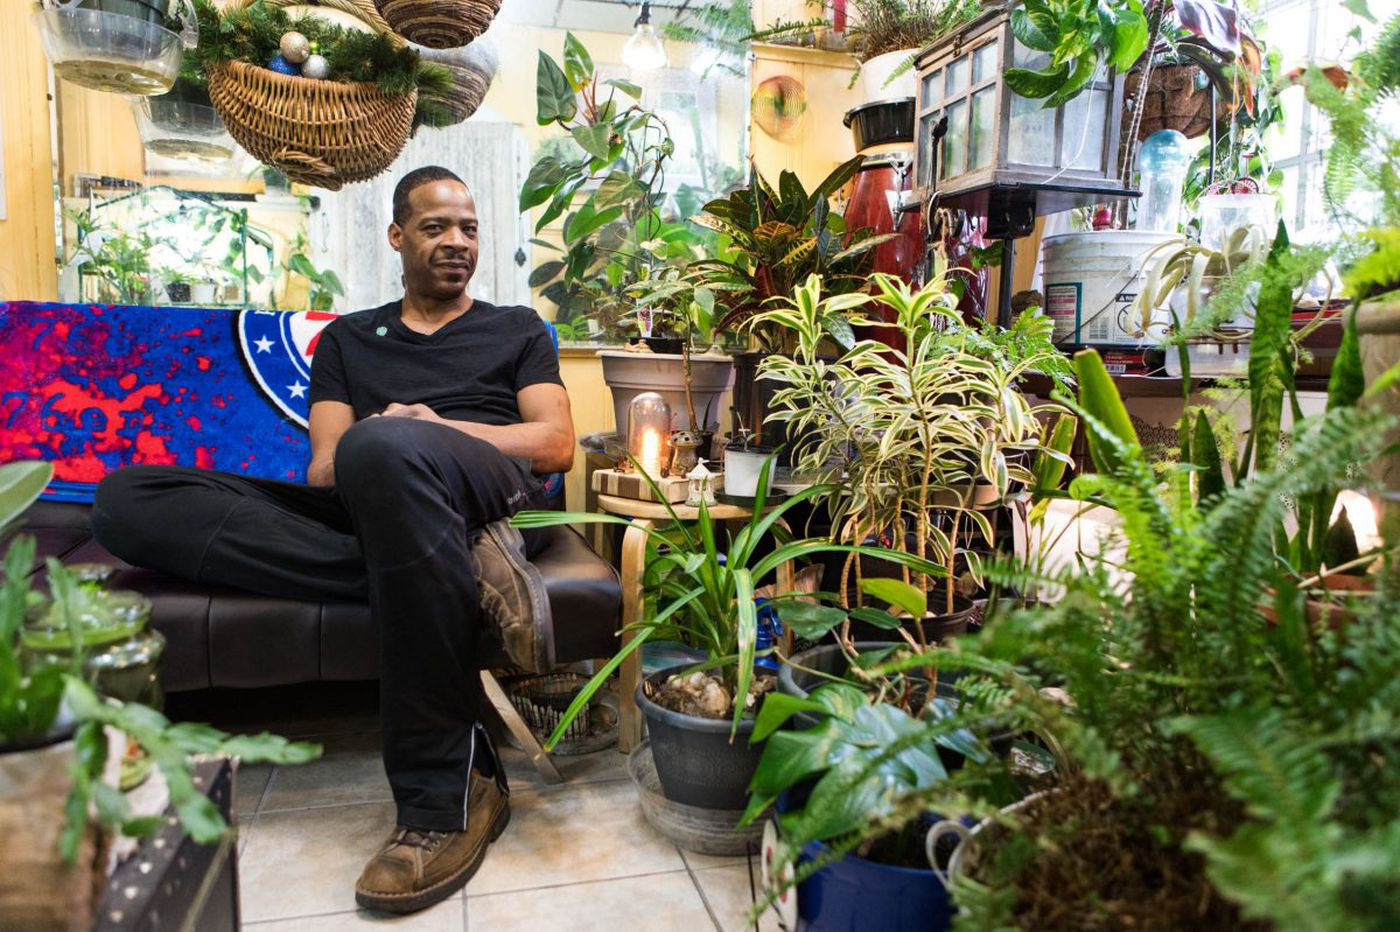 'Philly Plant Guy' has 200 plants in his South Philly rowhouse | We the People